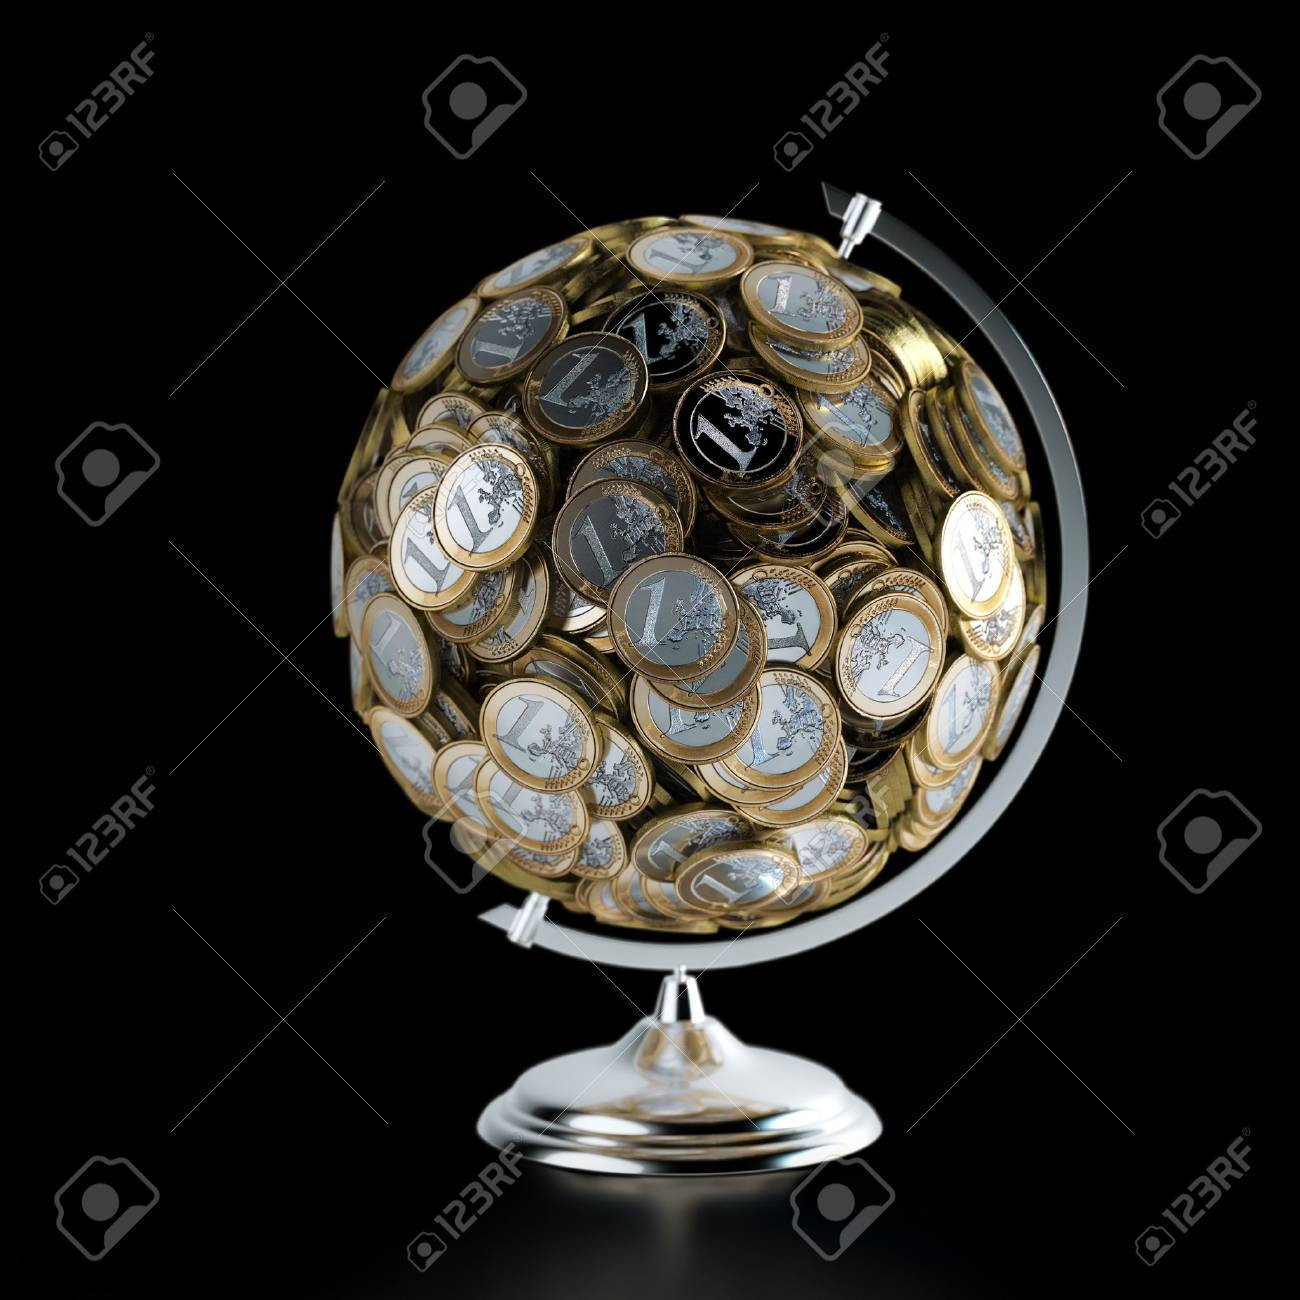 The Coins Globe Money Conceptual Picture Isolated On Black - 20522670